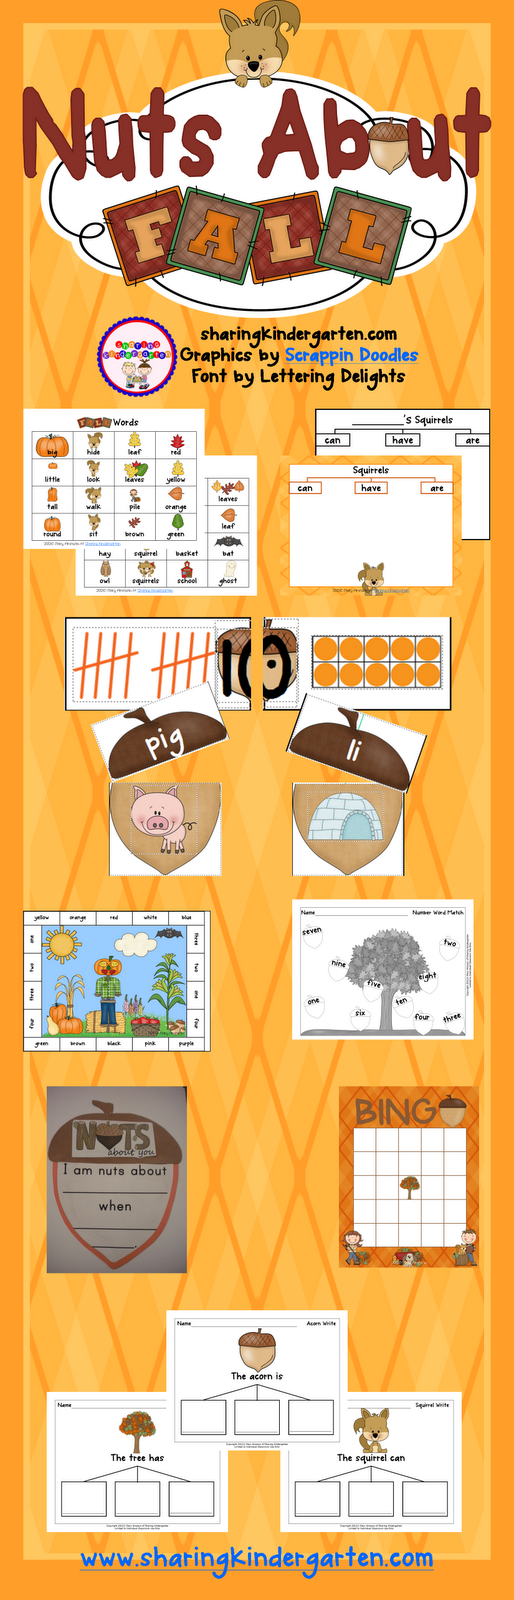 Nuts About Fall Unit... seriously.rocks!  SO many FUN and meaningful activities. This is going to be a hit!